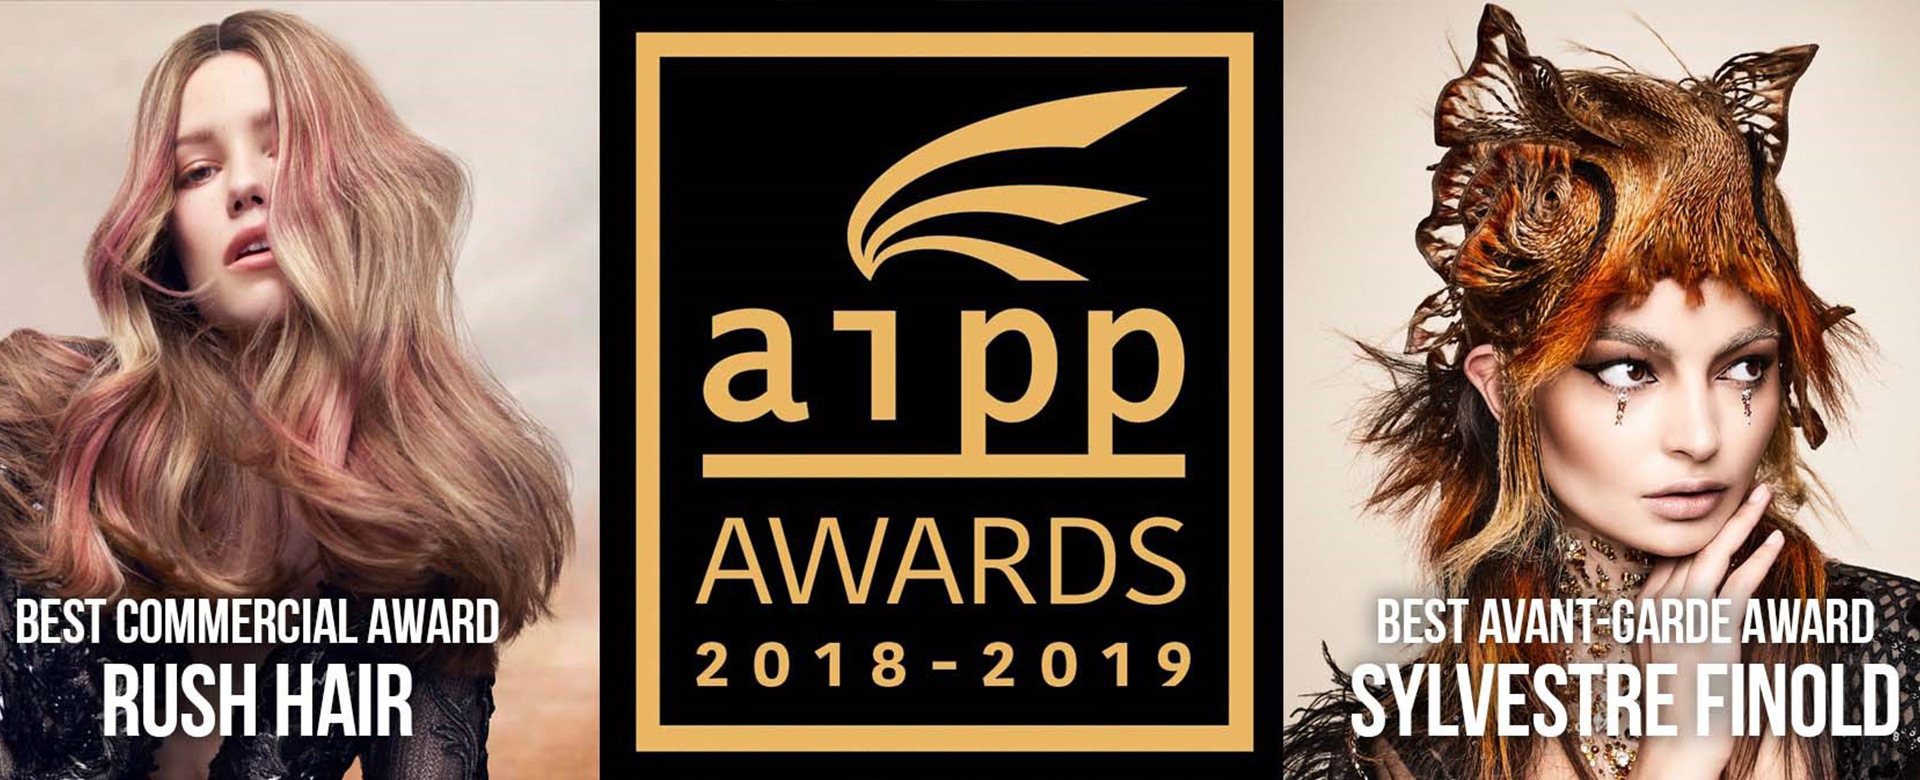 aipp AWARDS 2018-2019 (© Alex Barron-Hough)